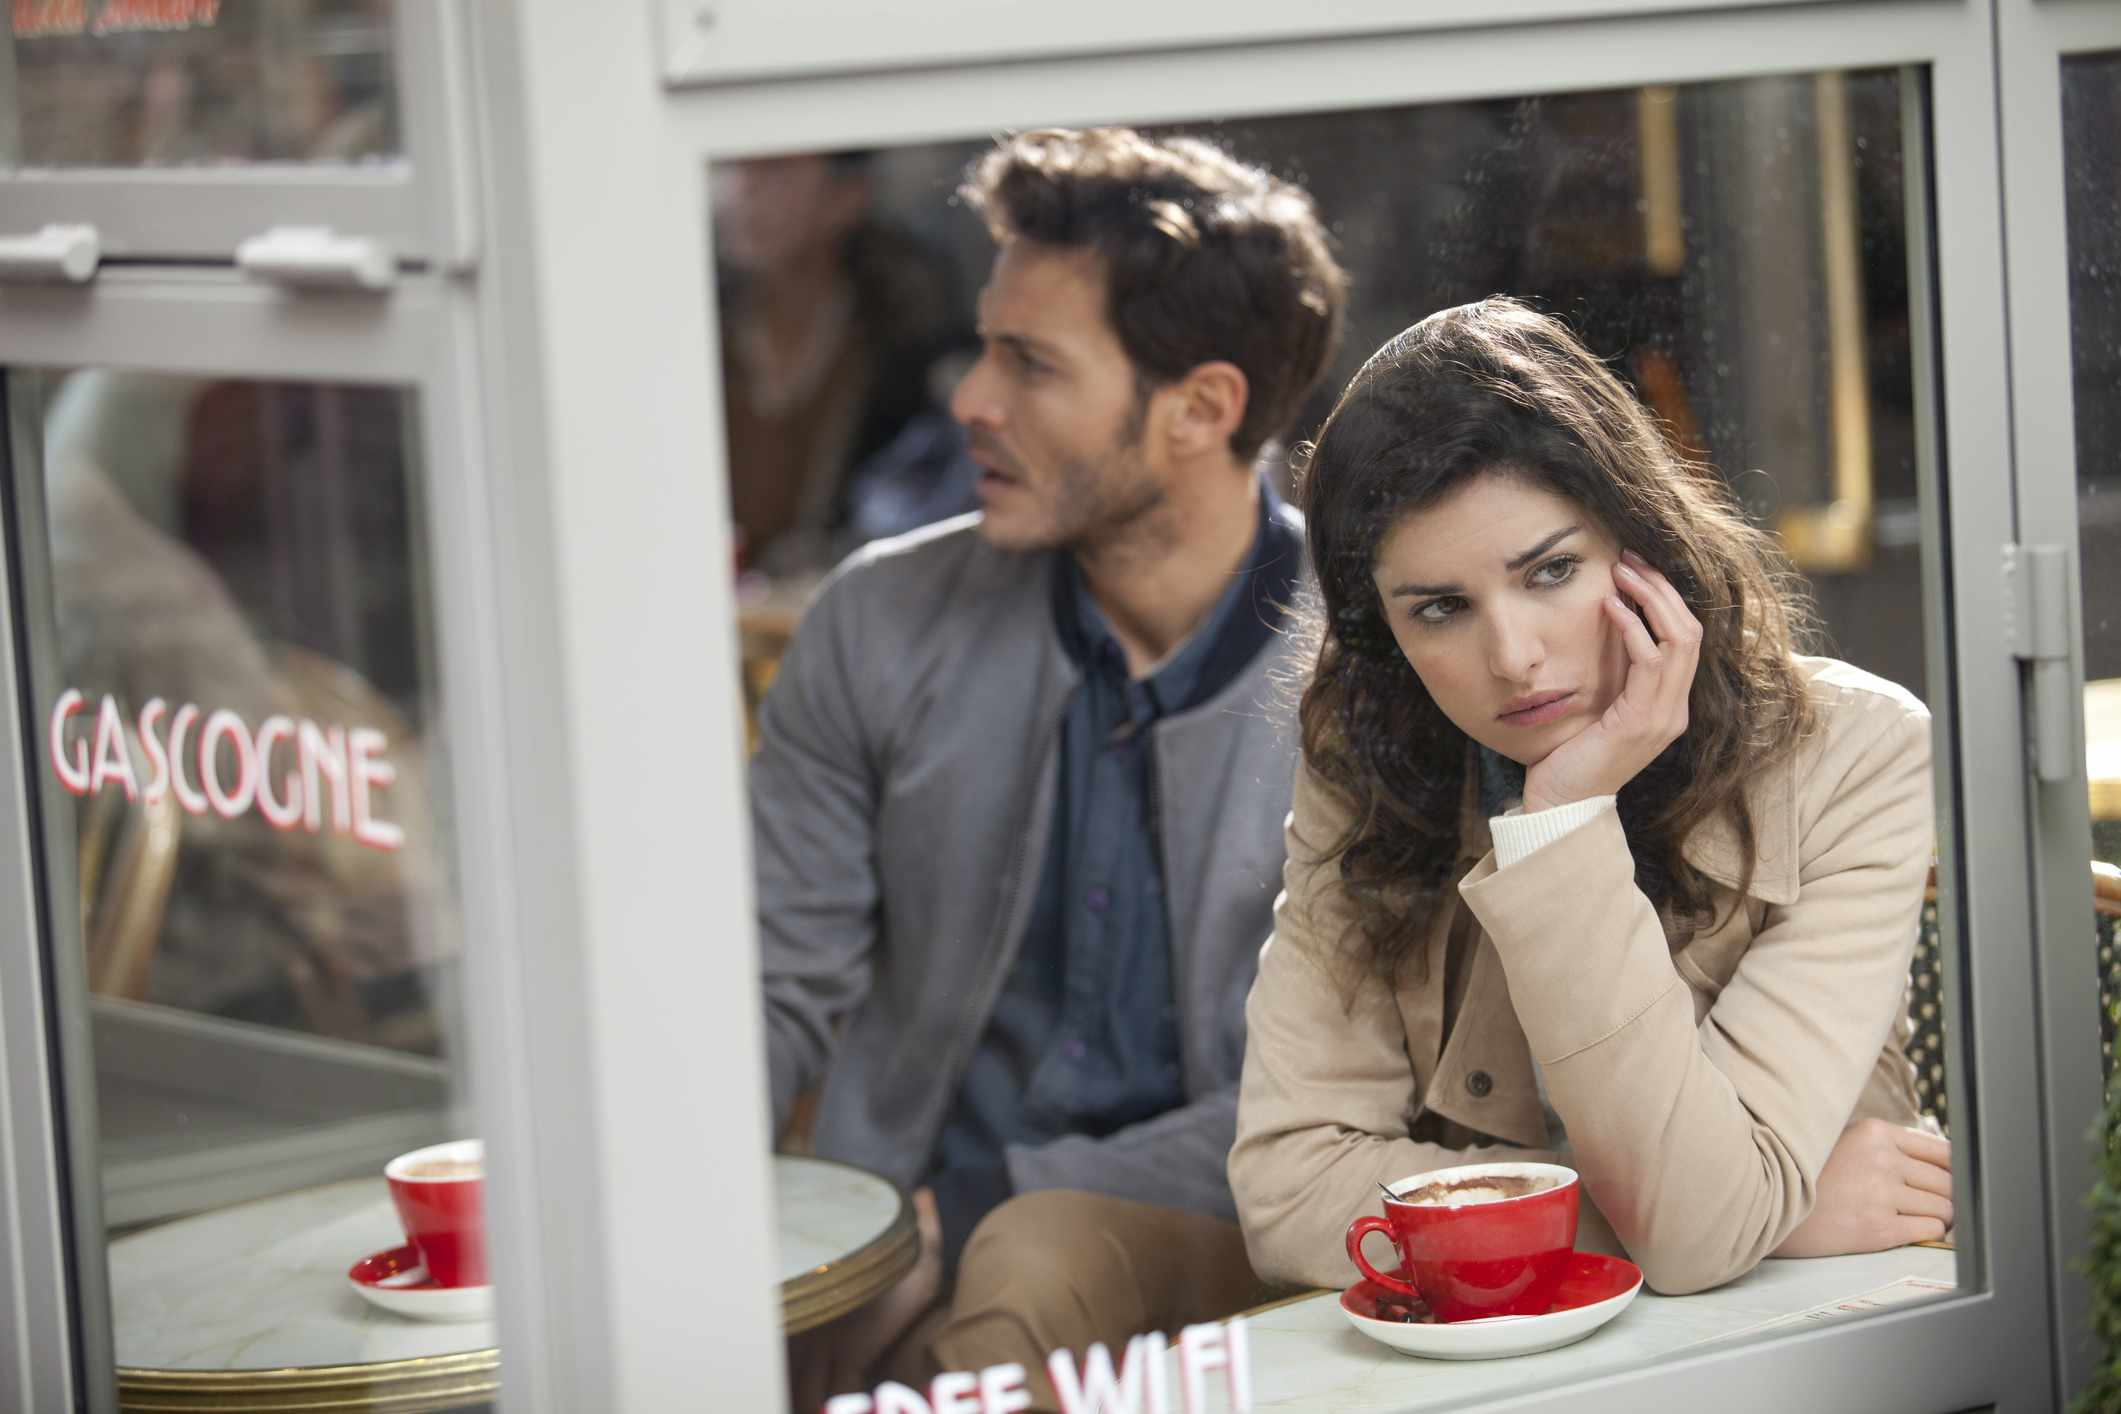 A woman looking out of a cafe window pensively, while her S.O. is in the background looking confused.